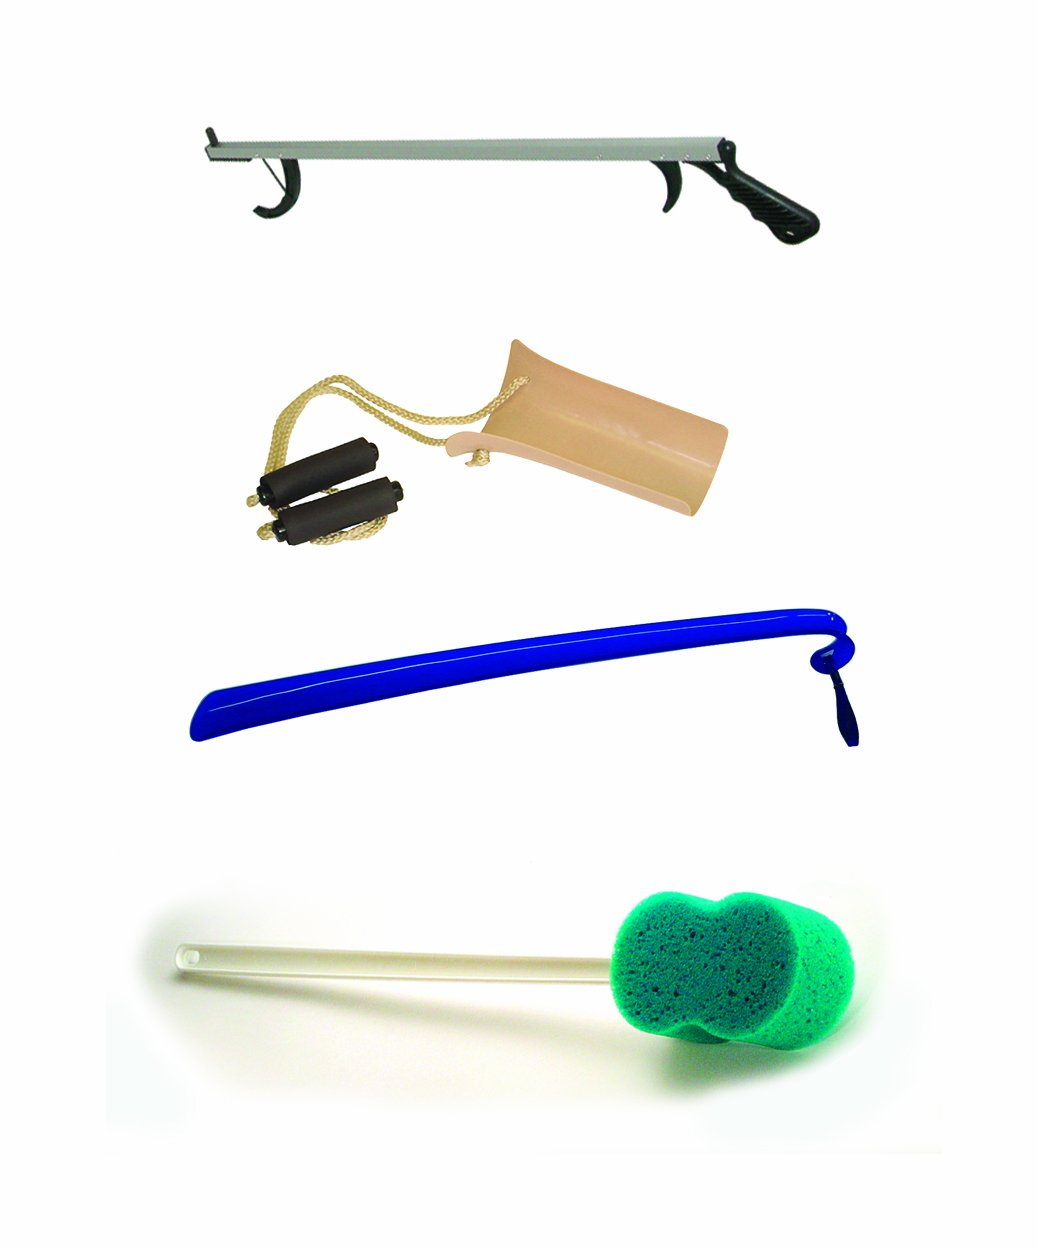 4 Piece Hip Kit with 32� Aluminum Reacher, Shoehorn, Formed Handle Sock Aid & Bath Sponge # 2286T